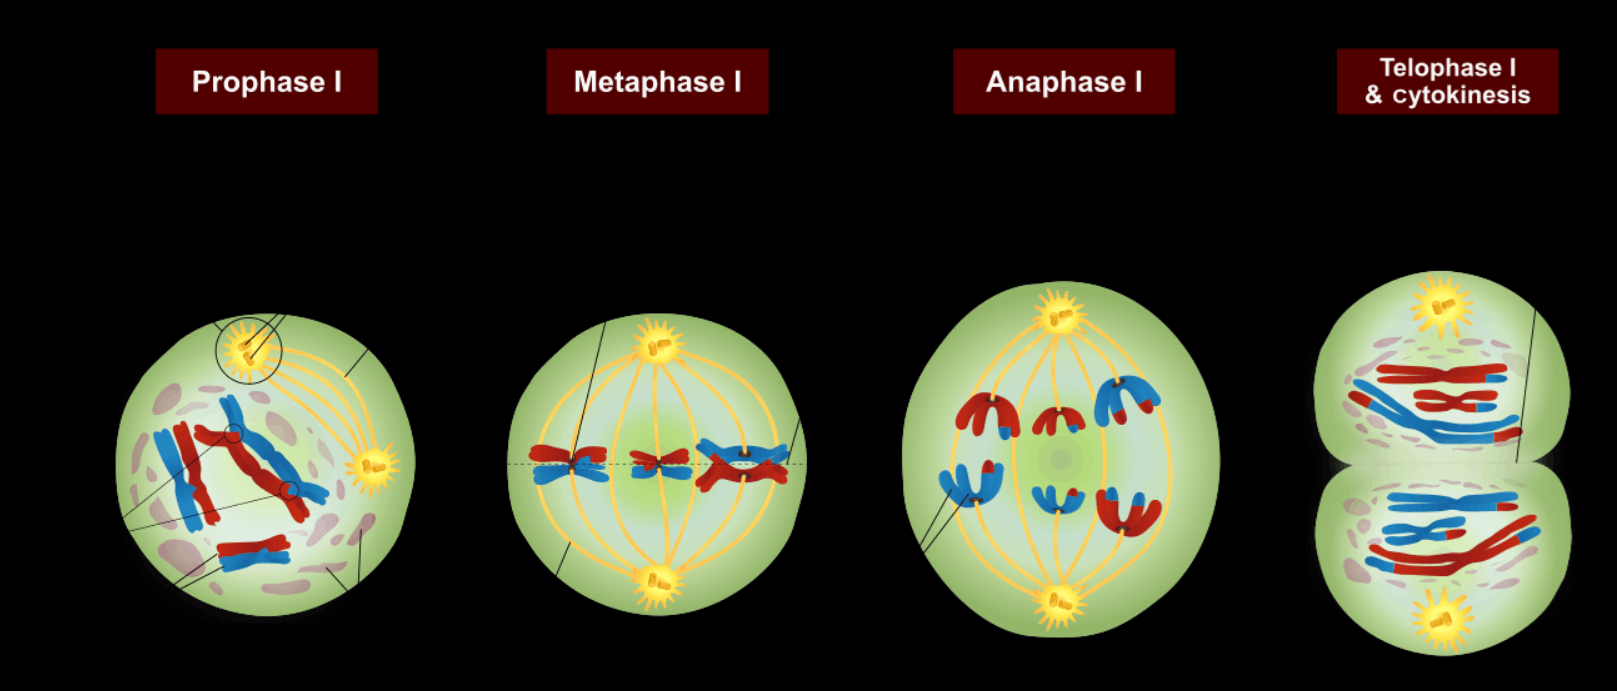 Cell Devision Meiosis I of Image - 5